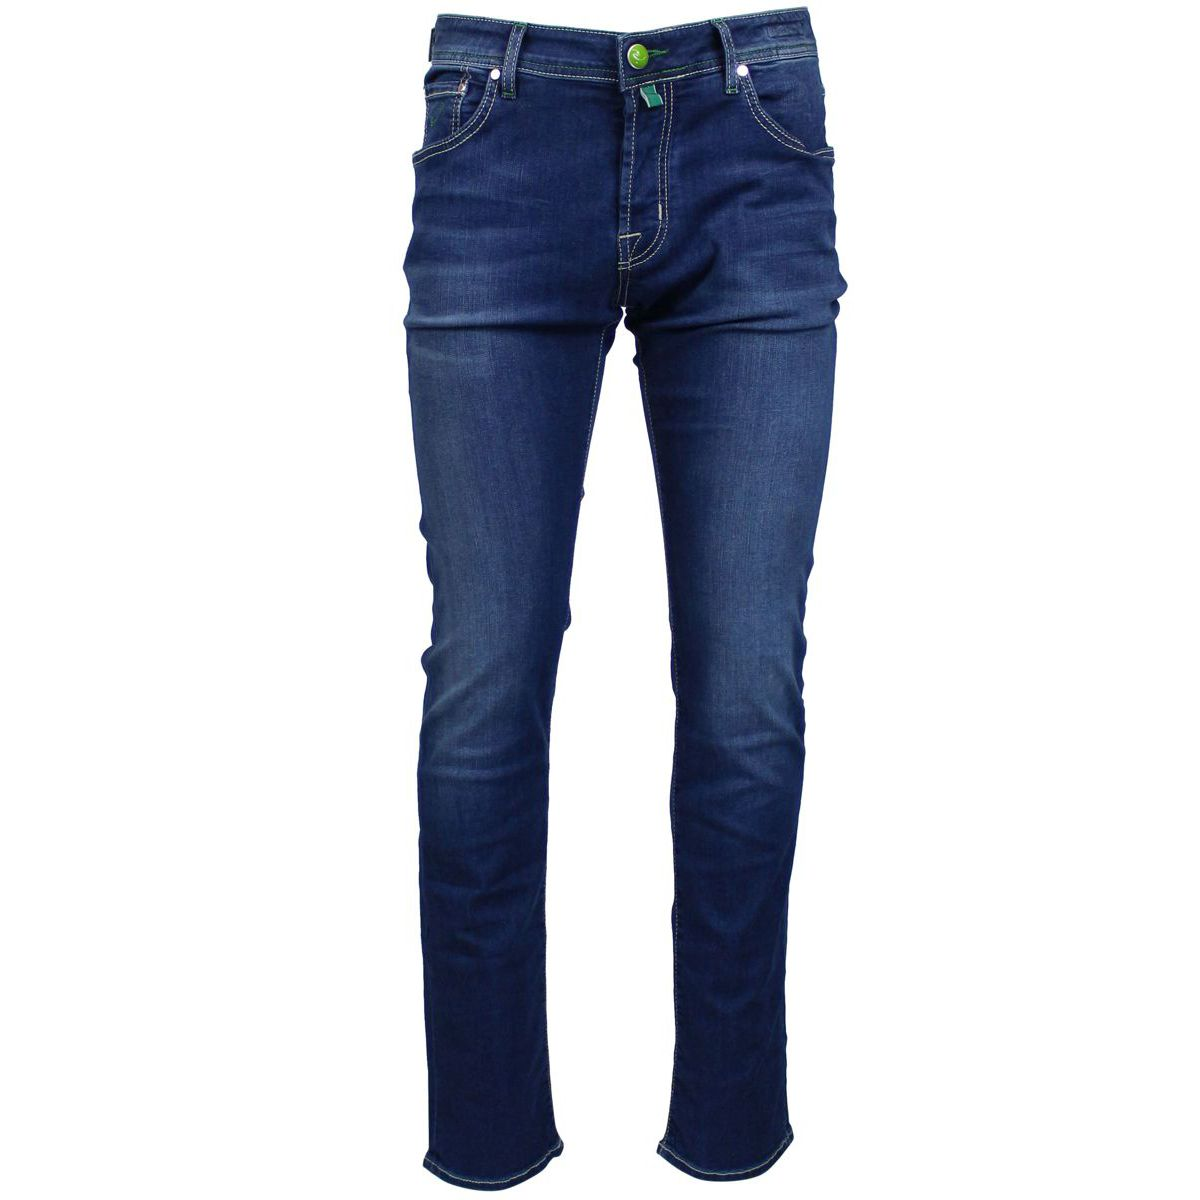 Skinny jeans with 5 pockets Medium denim Jacob Cohen